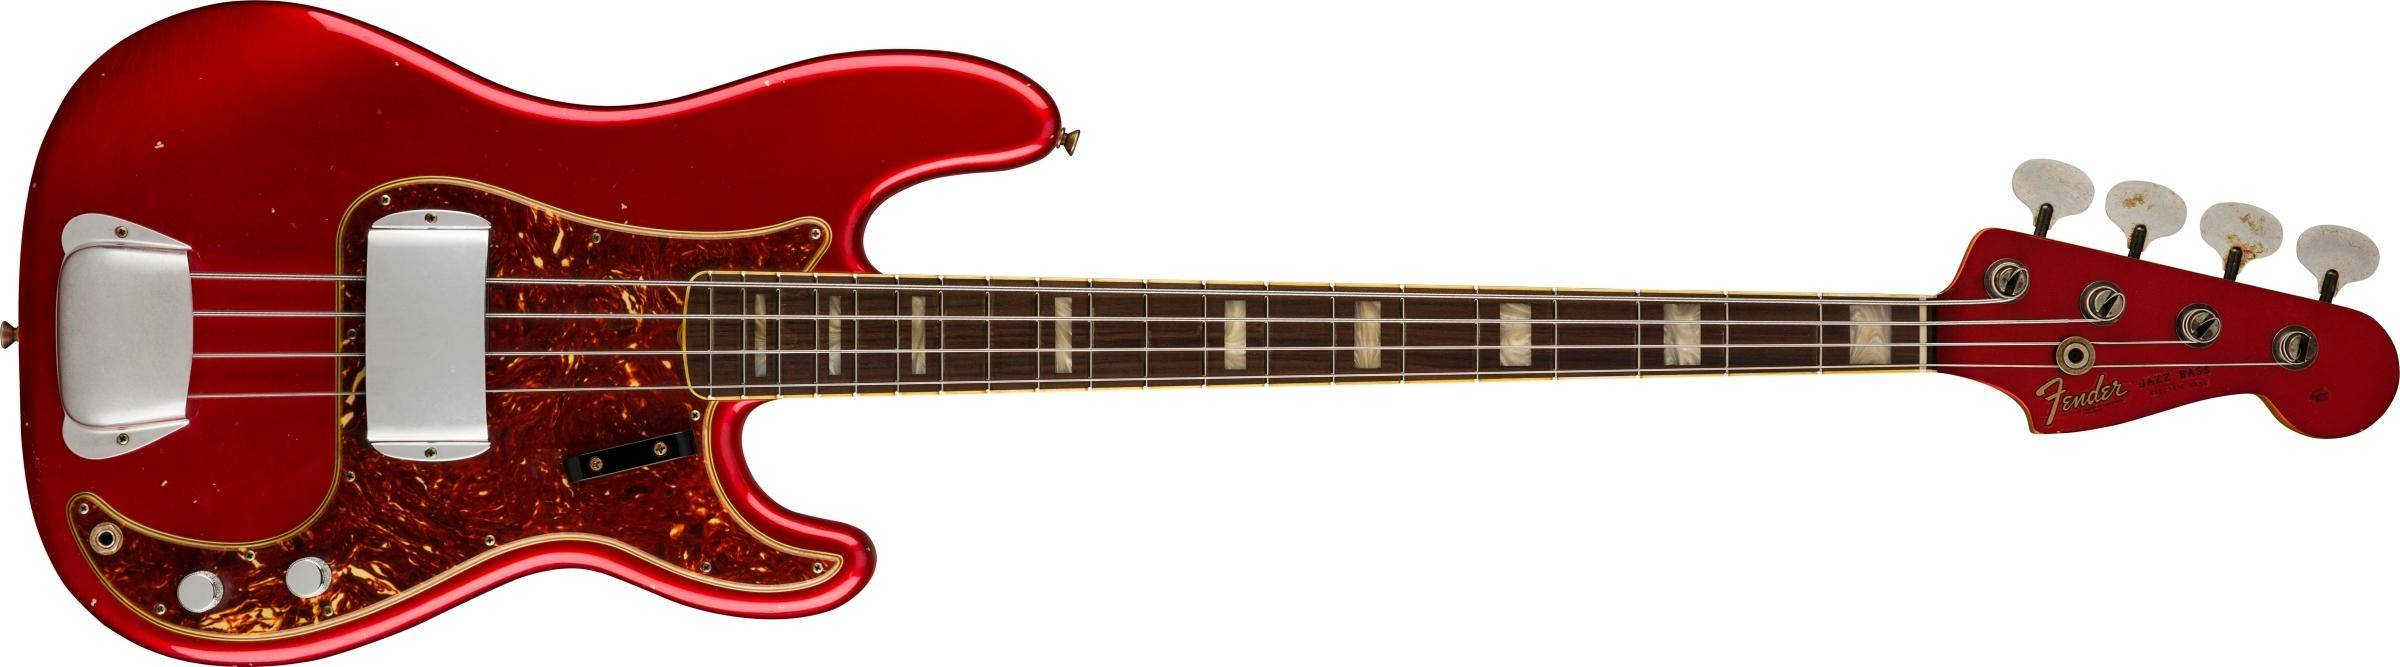 FENDER-Limited-Edition-P-J-Bass-Journeyman-Relic-Rosewood-Fingerboard-Aged-Candy-Apple-Red-sku-571005364